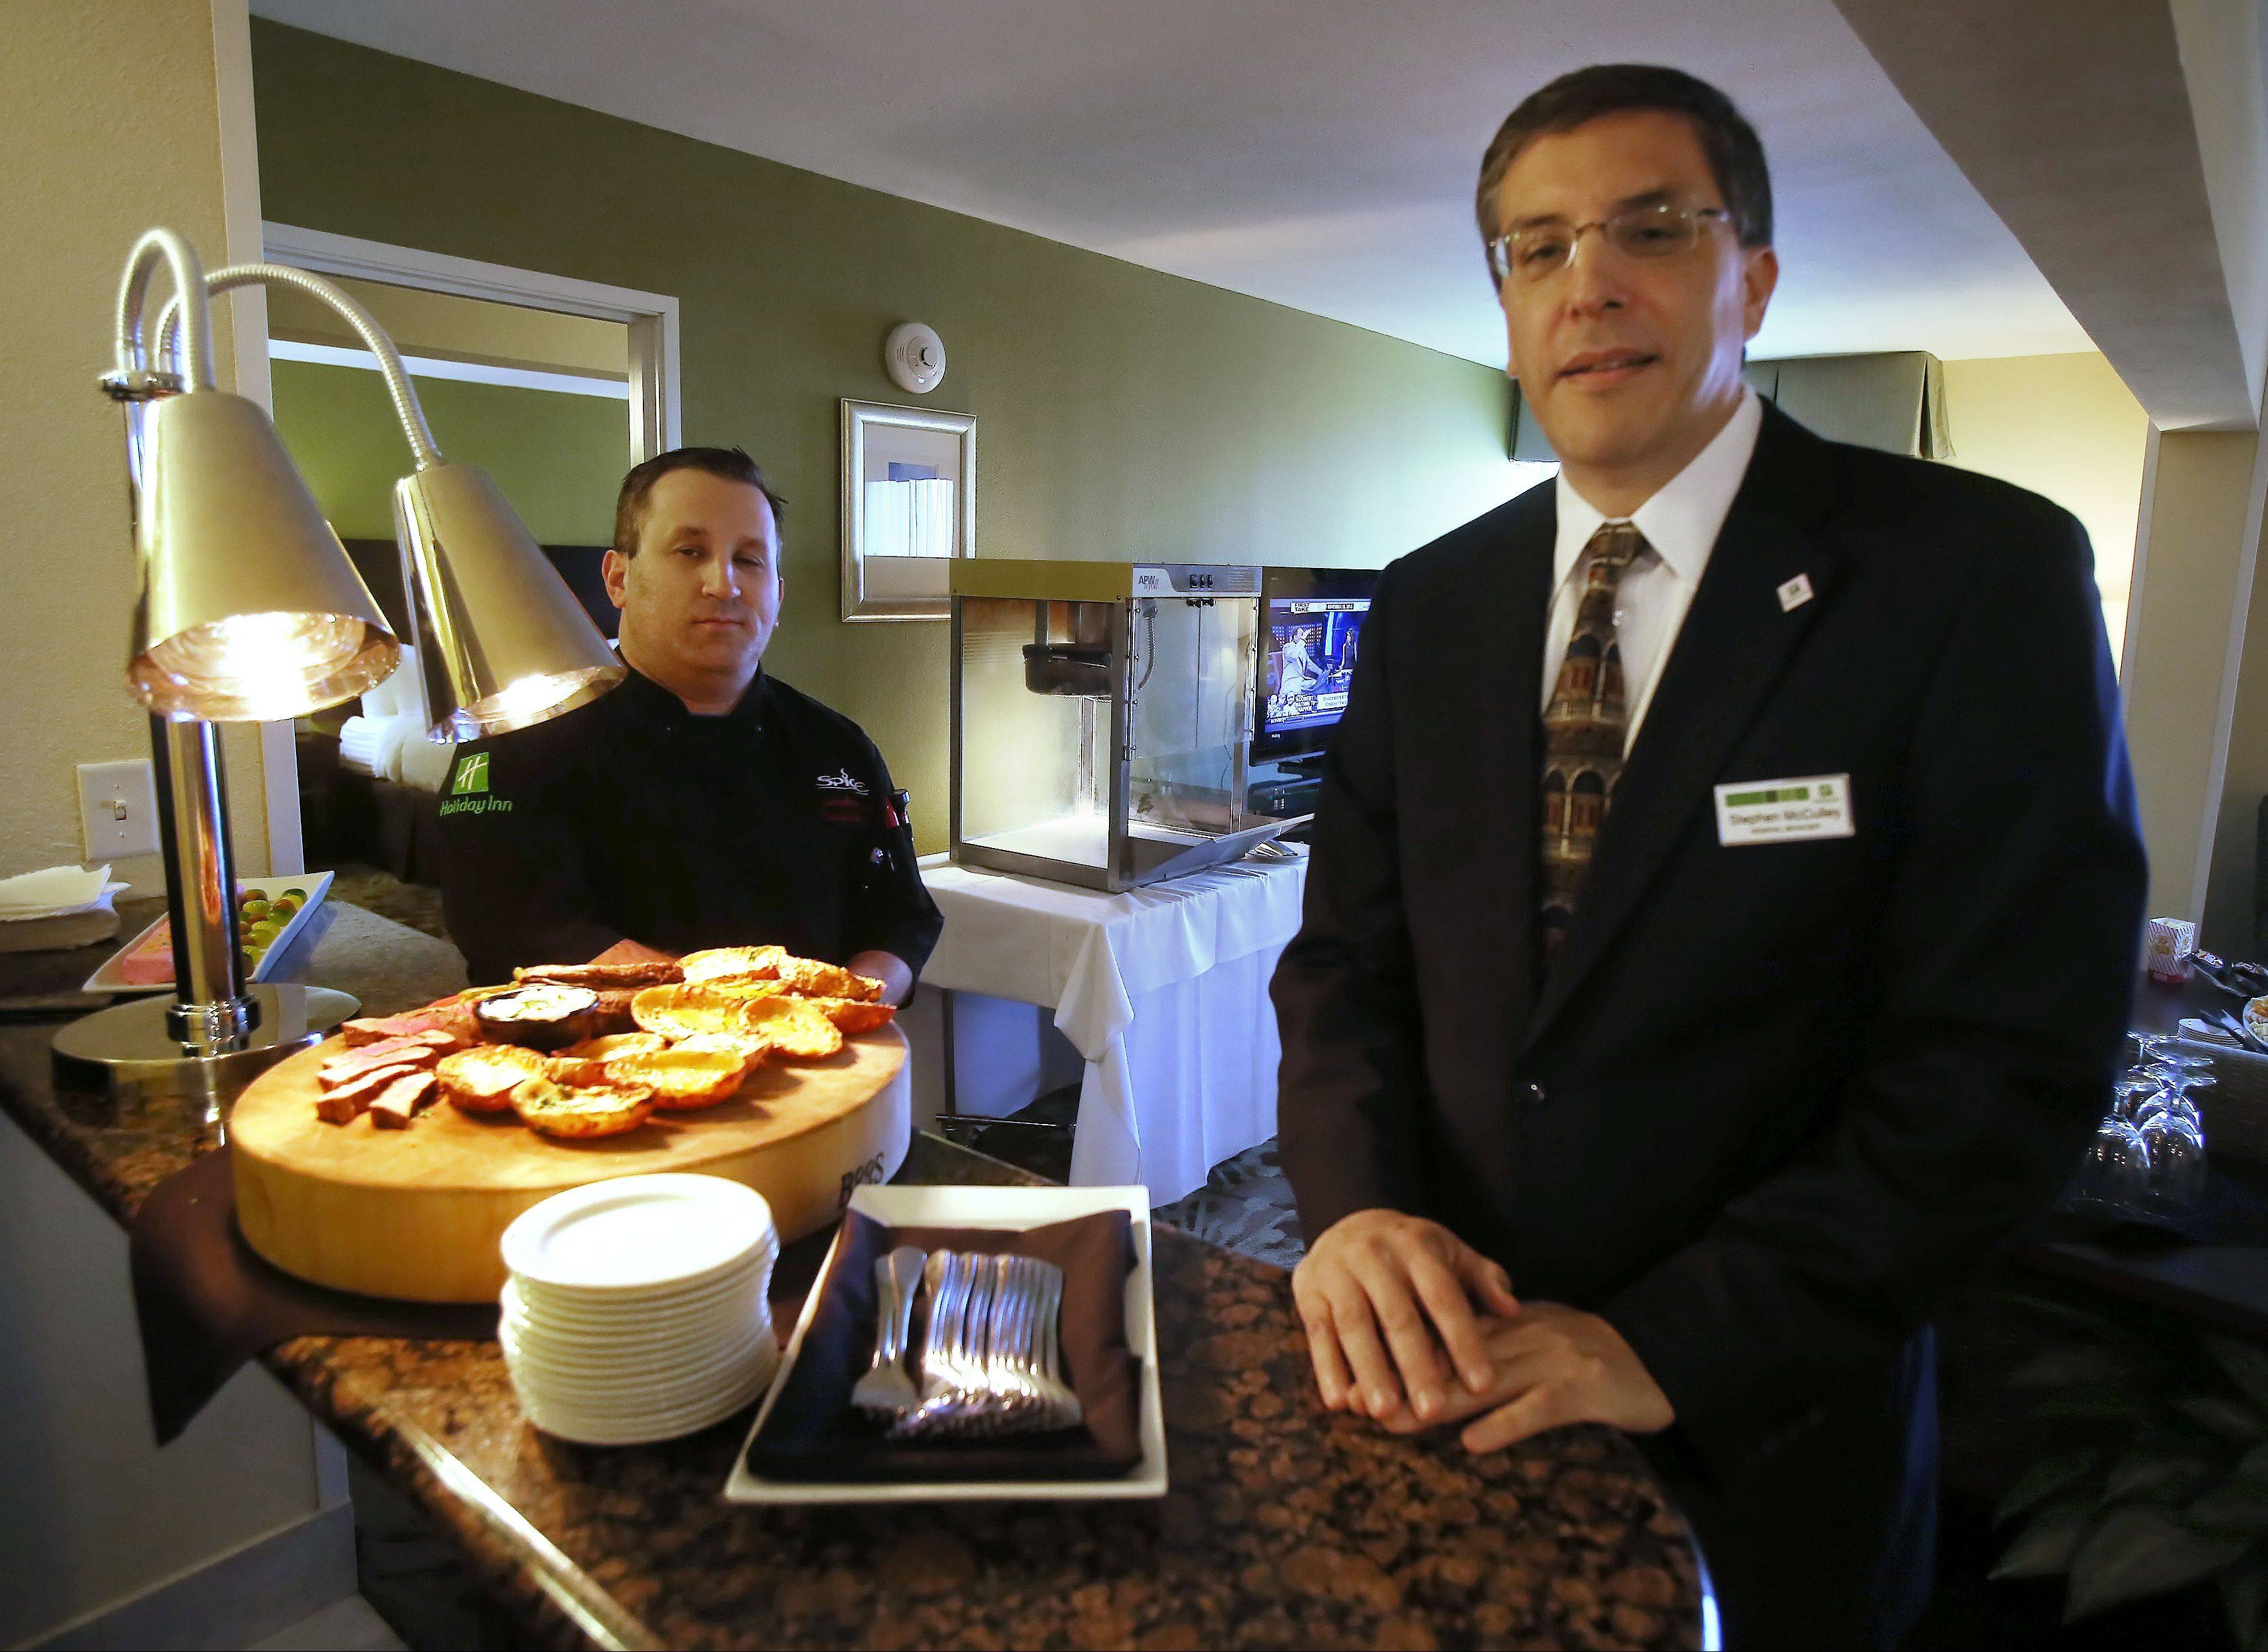 Sailors in for presidential treatment at Gurnee hotel on Thanksgiving